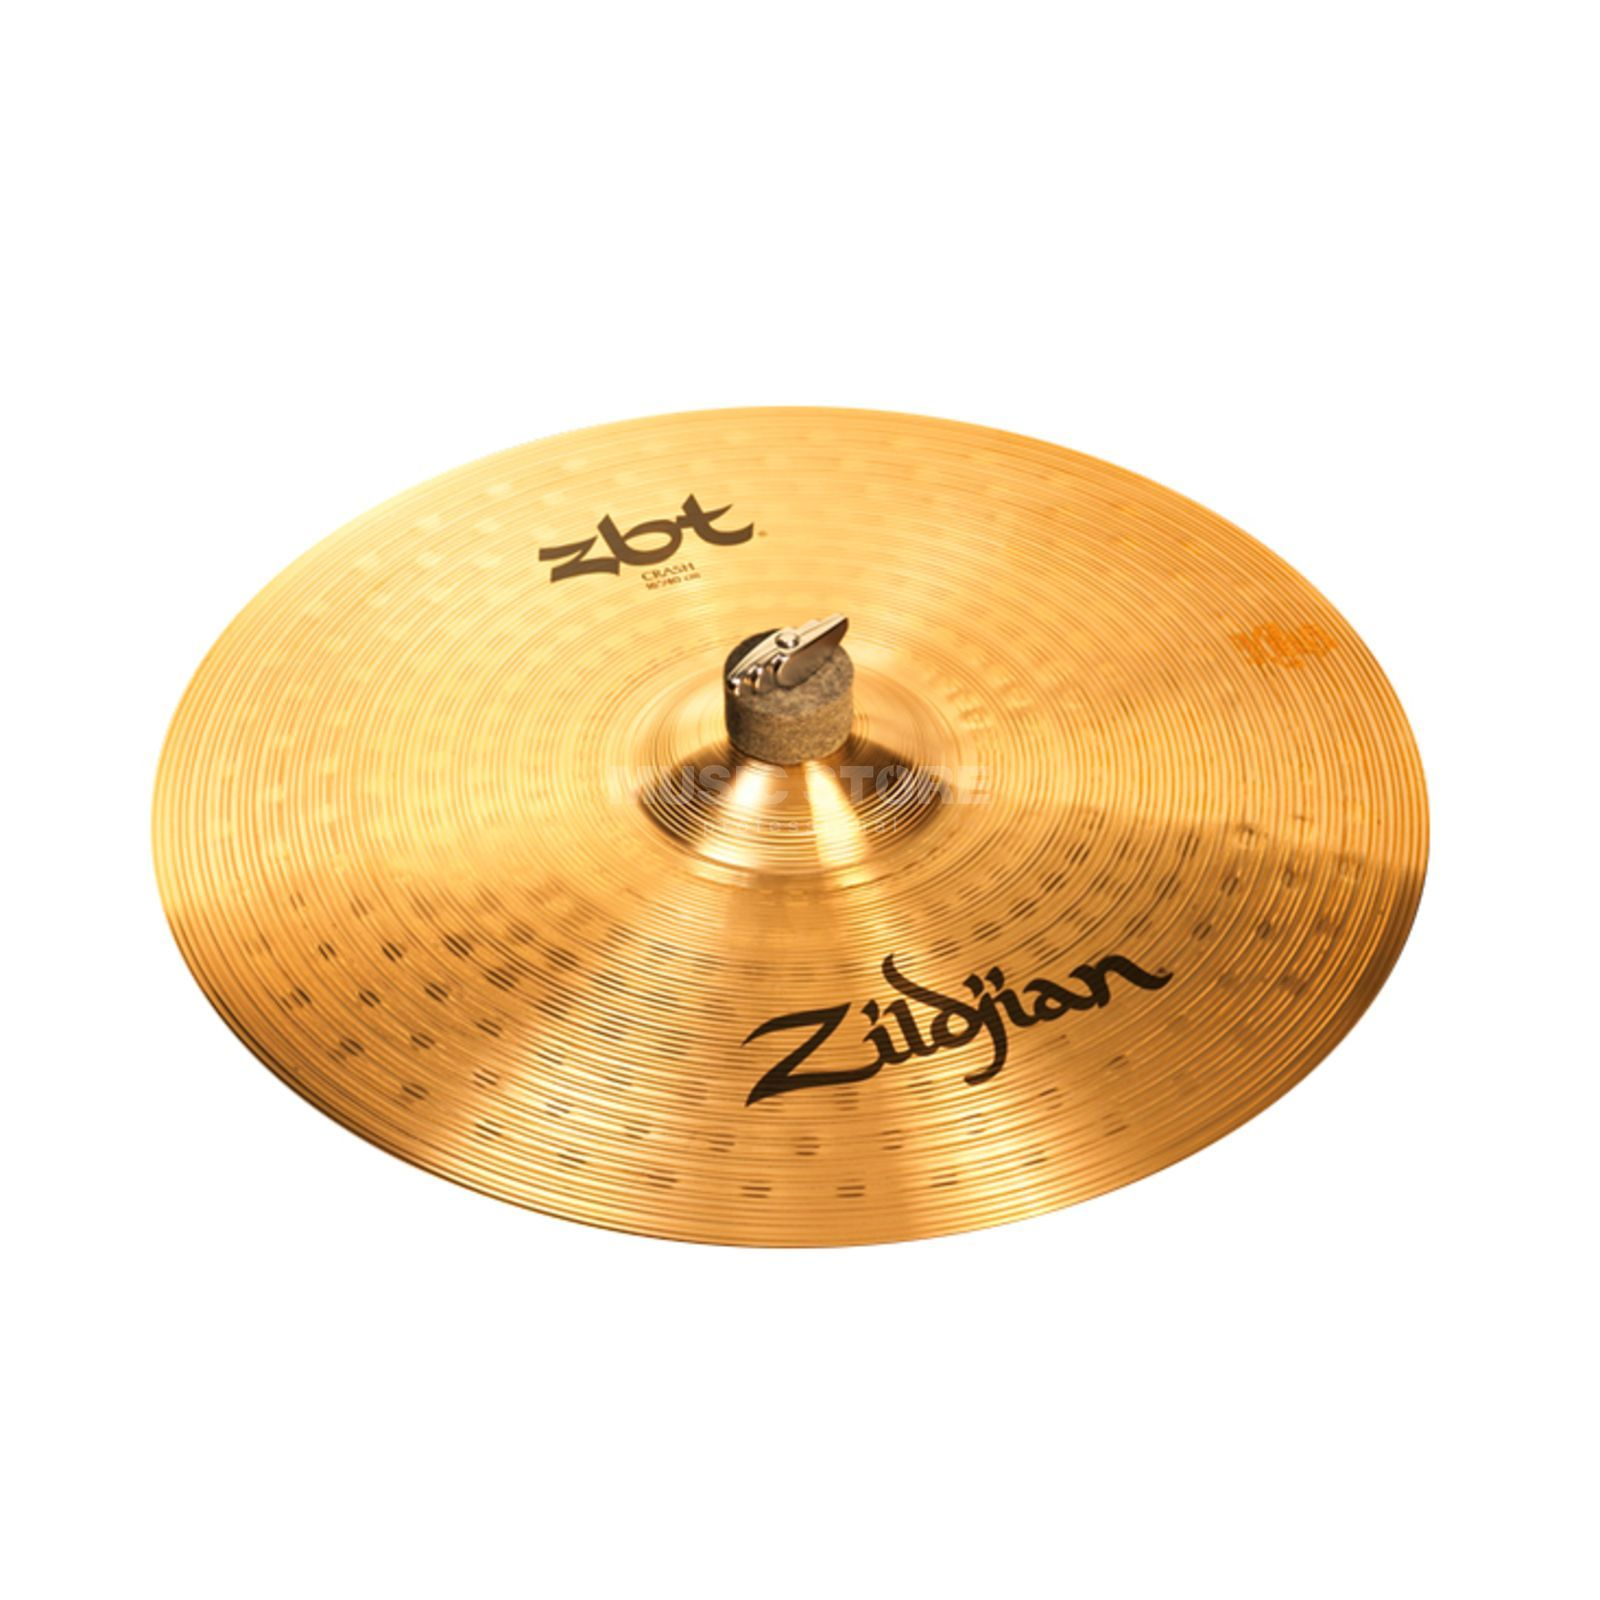 "Zildjian ZBT 16"" Crash, Brilliant Finish Product Image"